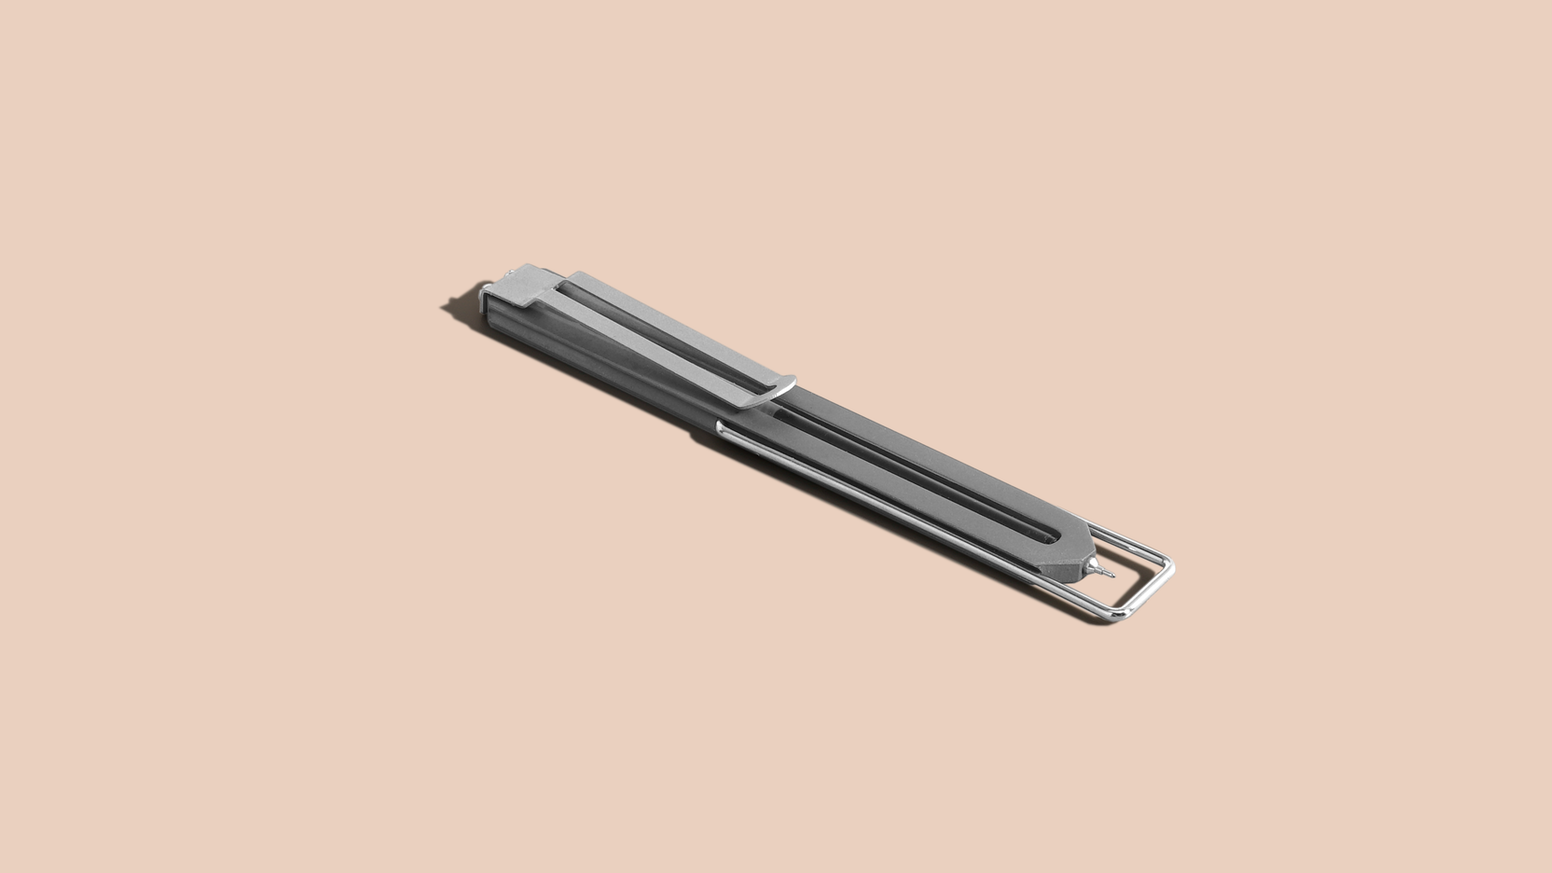 A titanium bookmark pen with a detachable clip. The kid sibling of Pen Type-A and Pen Type-B is finally here.